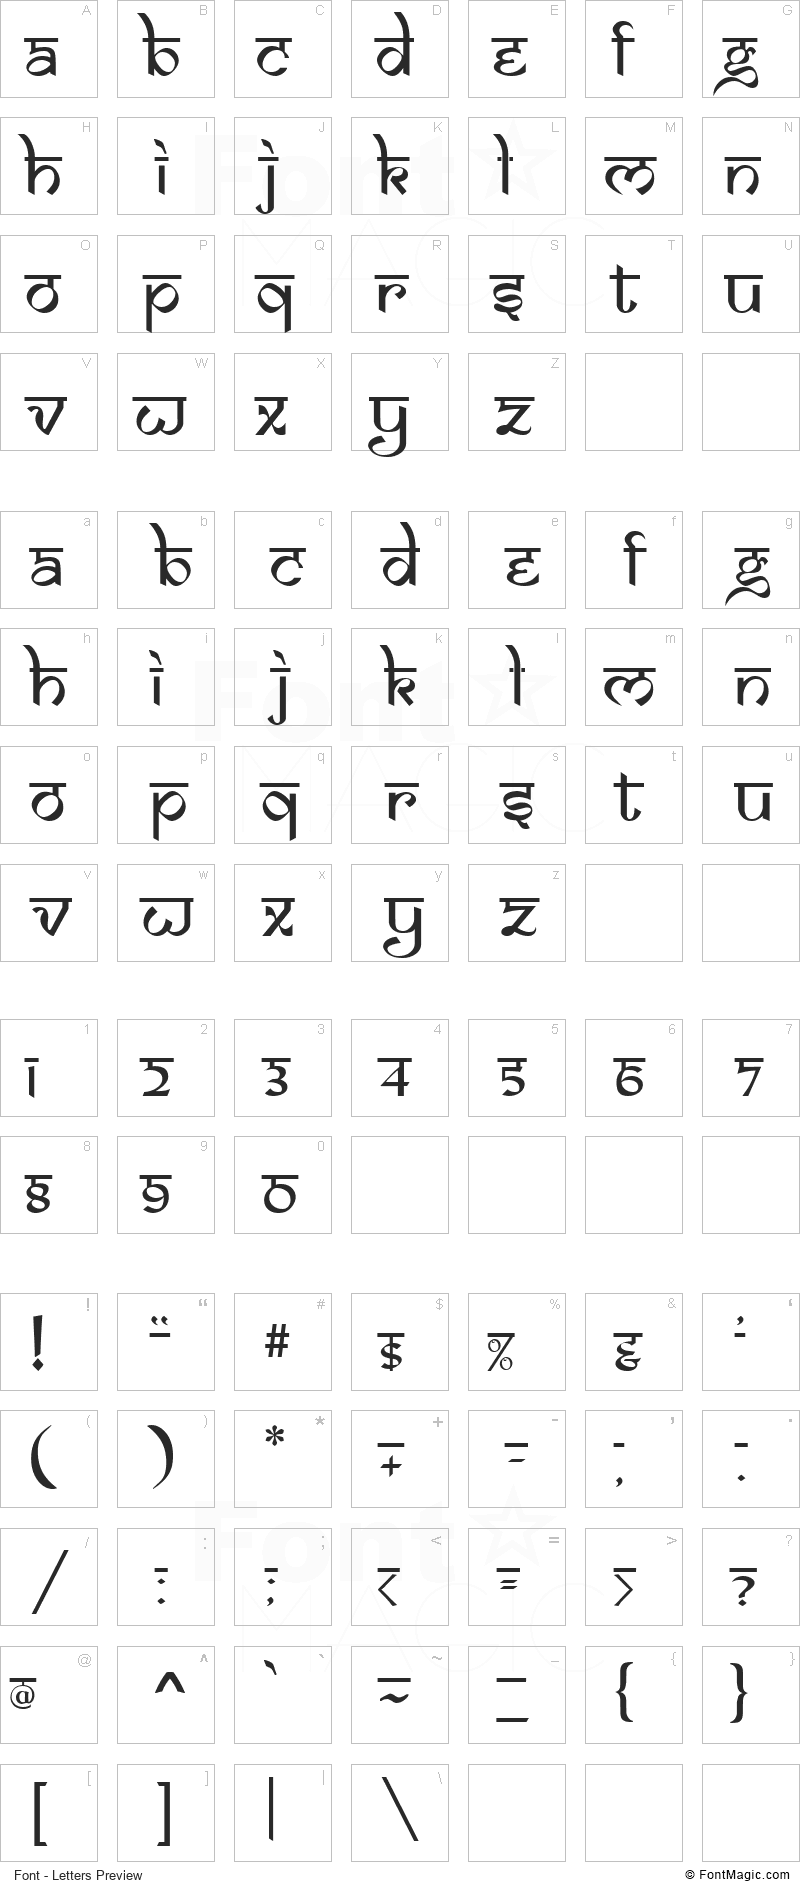 Samarkan Font - All Latters Preview Chart